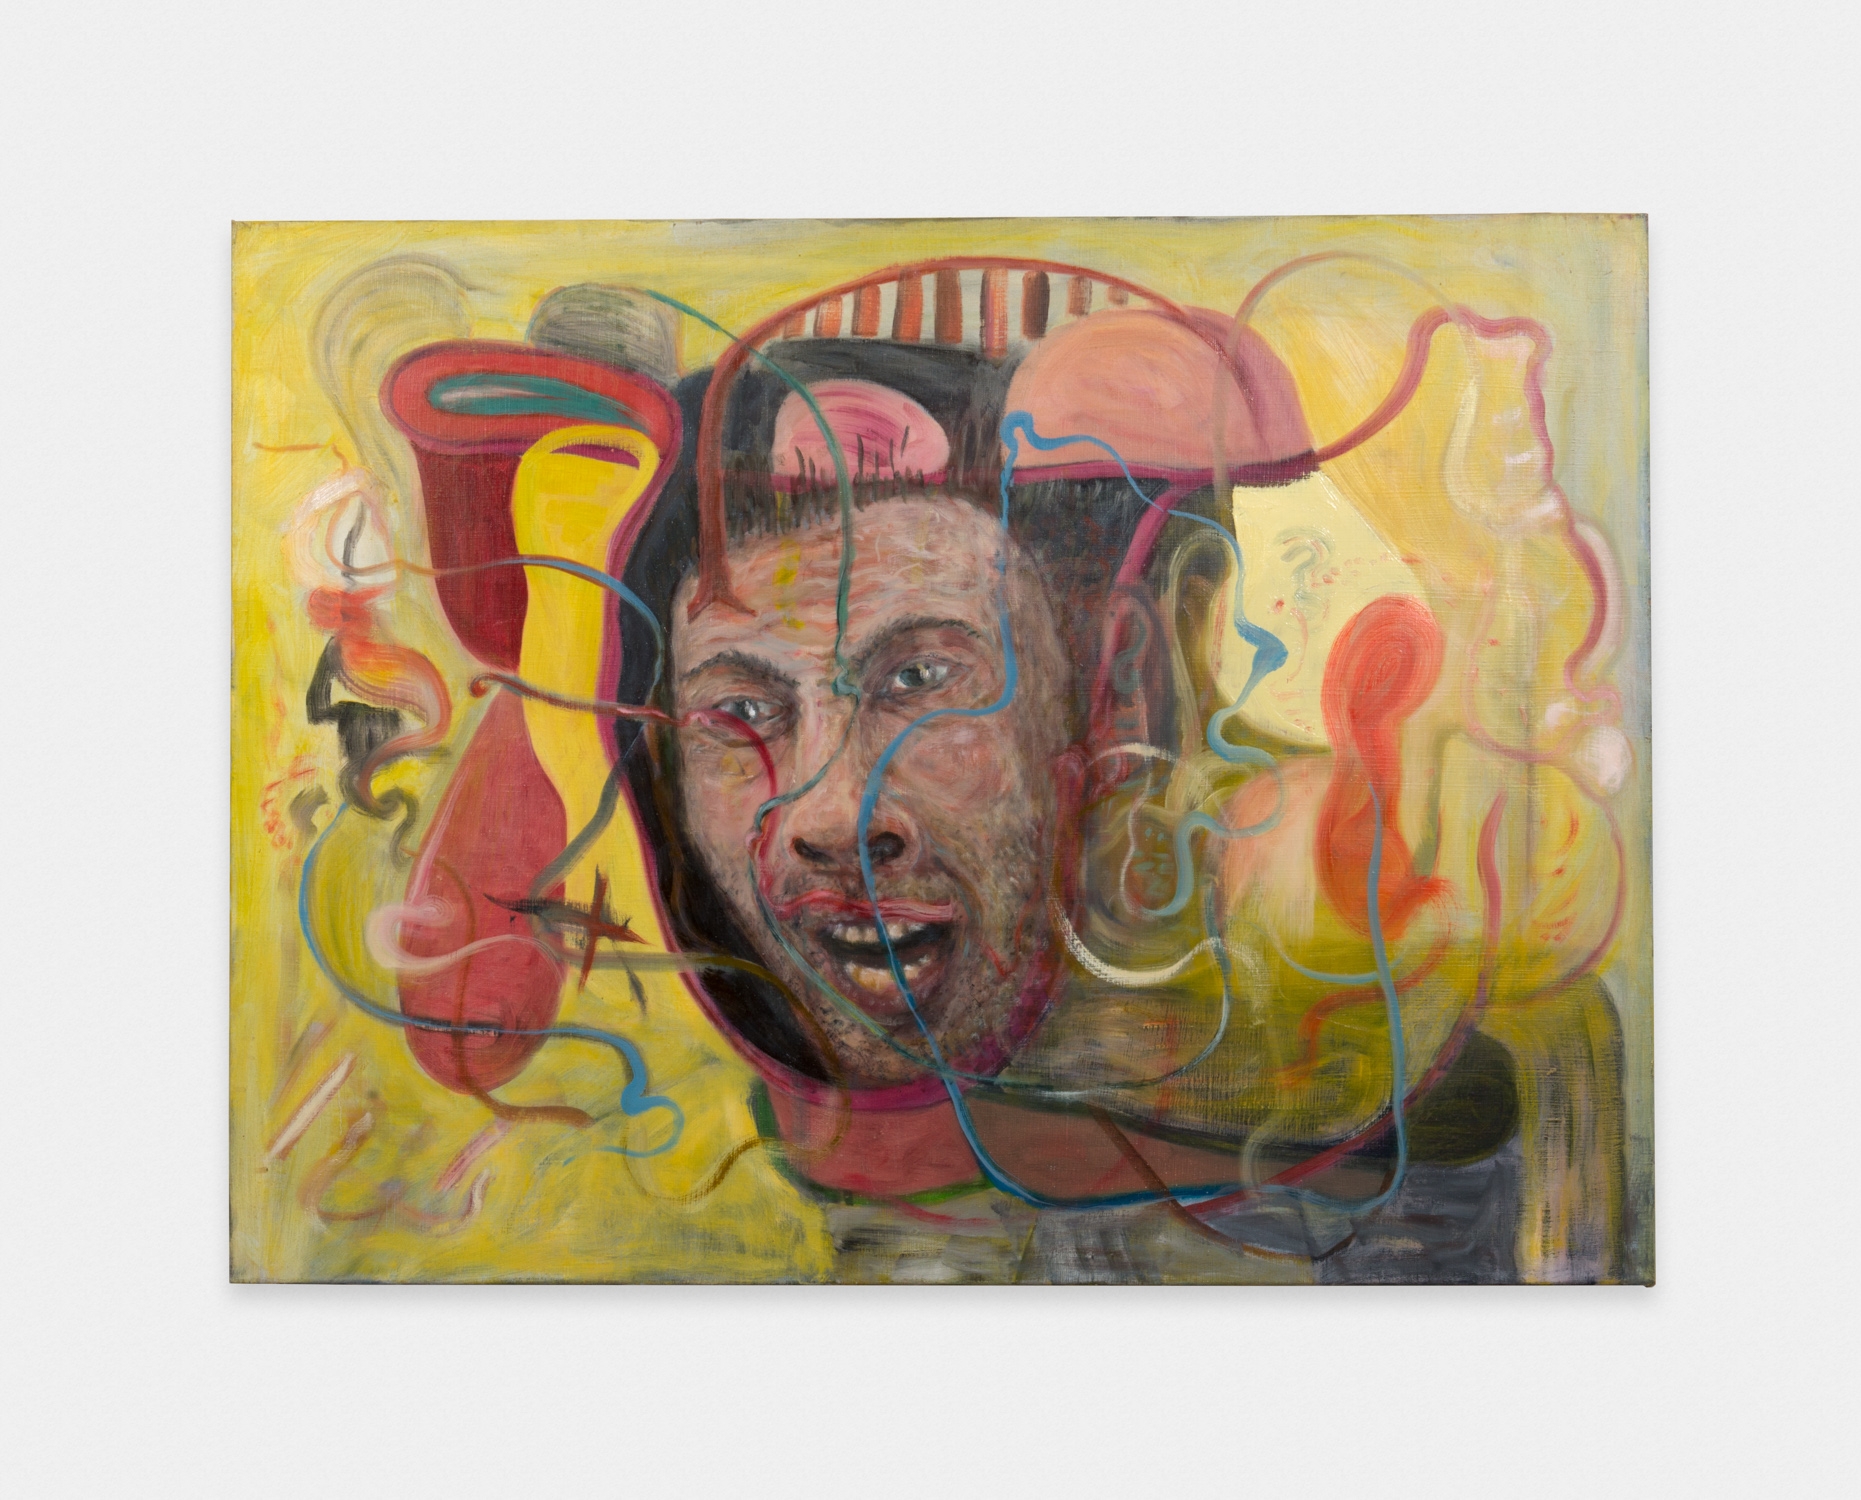 Jim Lutes  Old Yeller  1997/2016 Oil on linen 30h x 40w in JLutes001